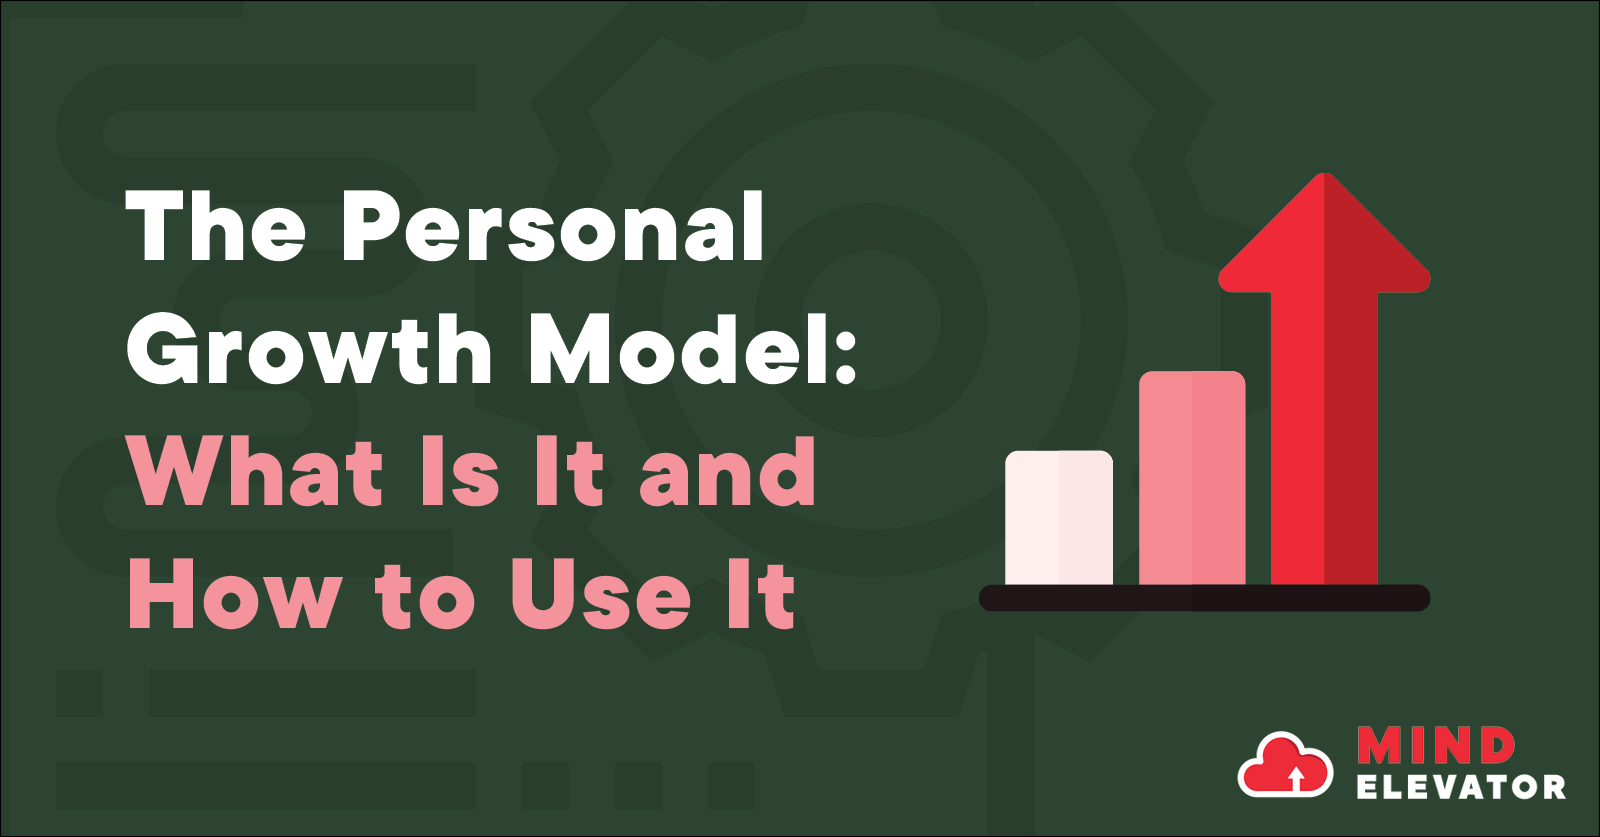 The Personal Growth Model that describes the five key steps of personal growth and personal development: belief, plan, action, result and review.